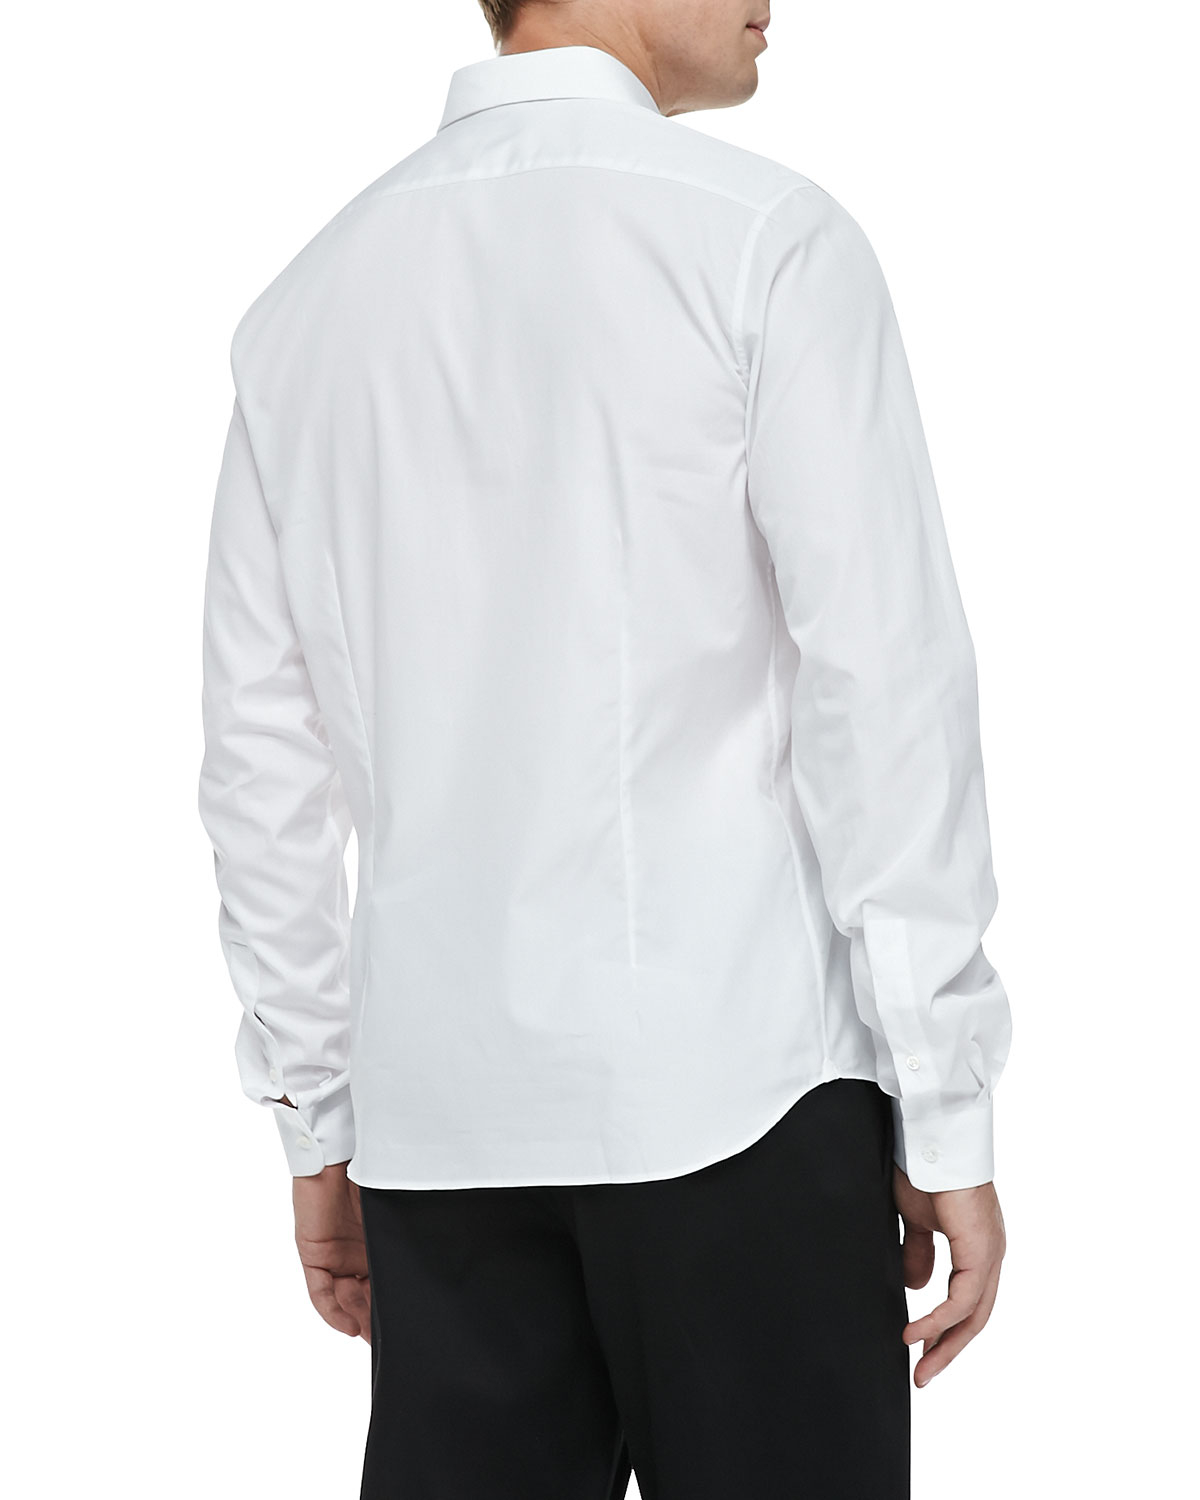 Valentino Stud Collar Button Down Shirt In White For Men